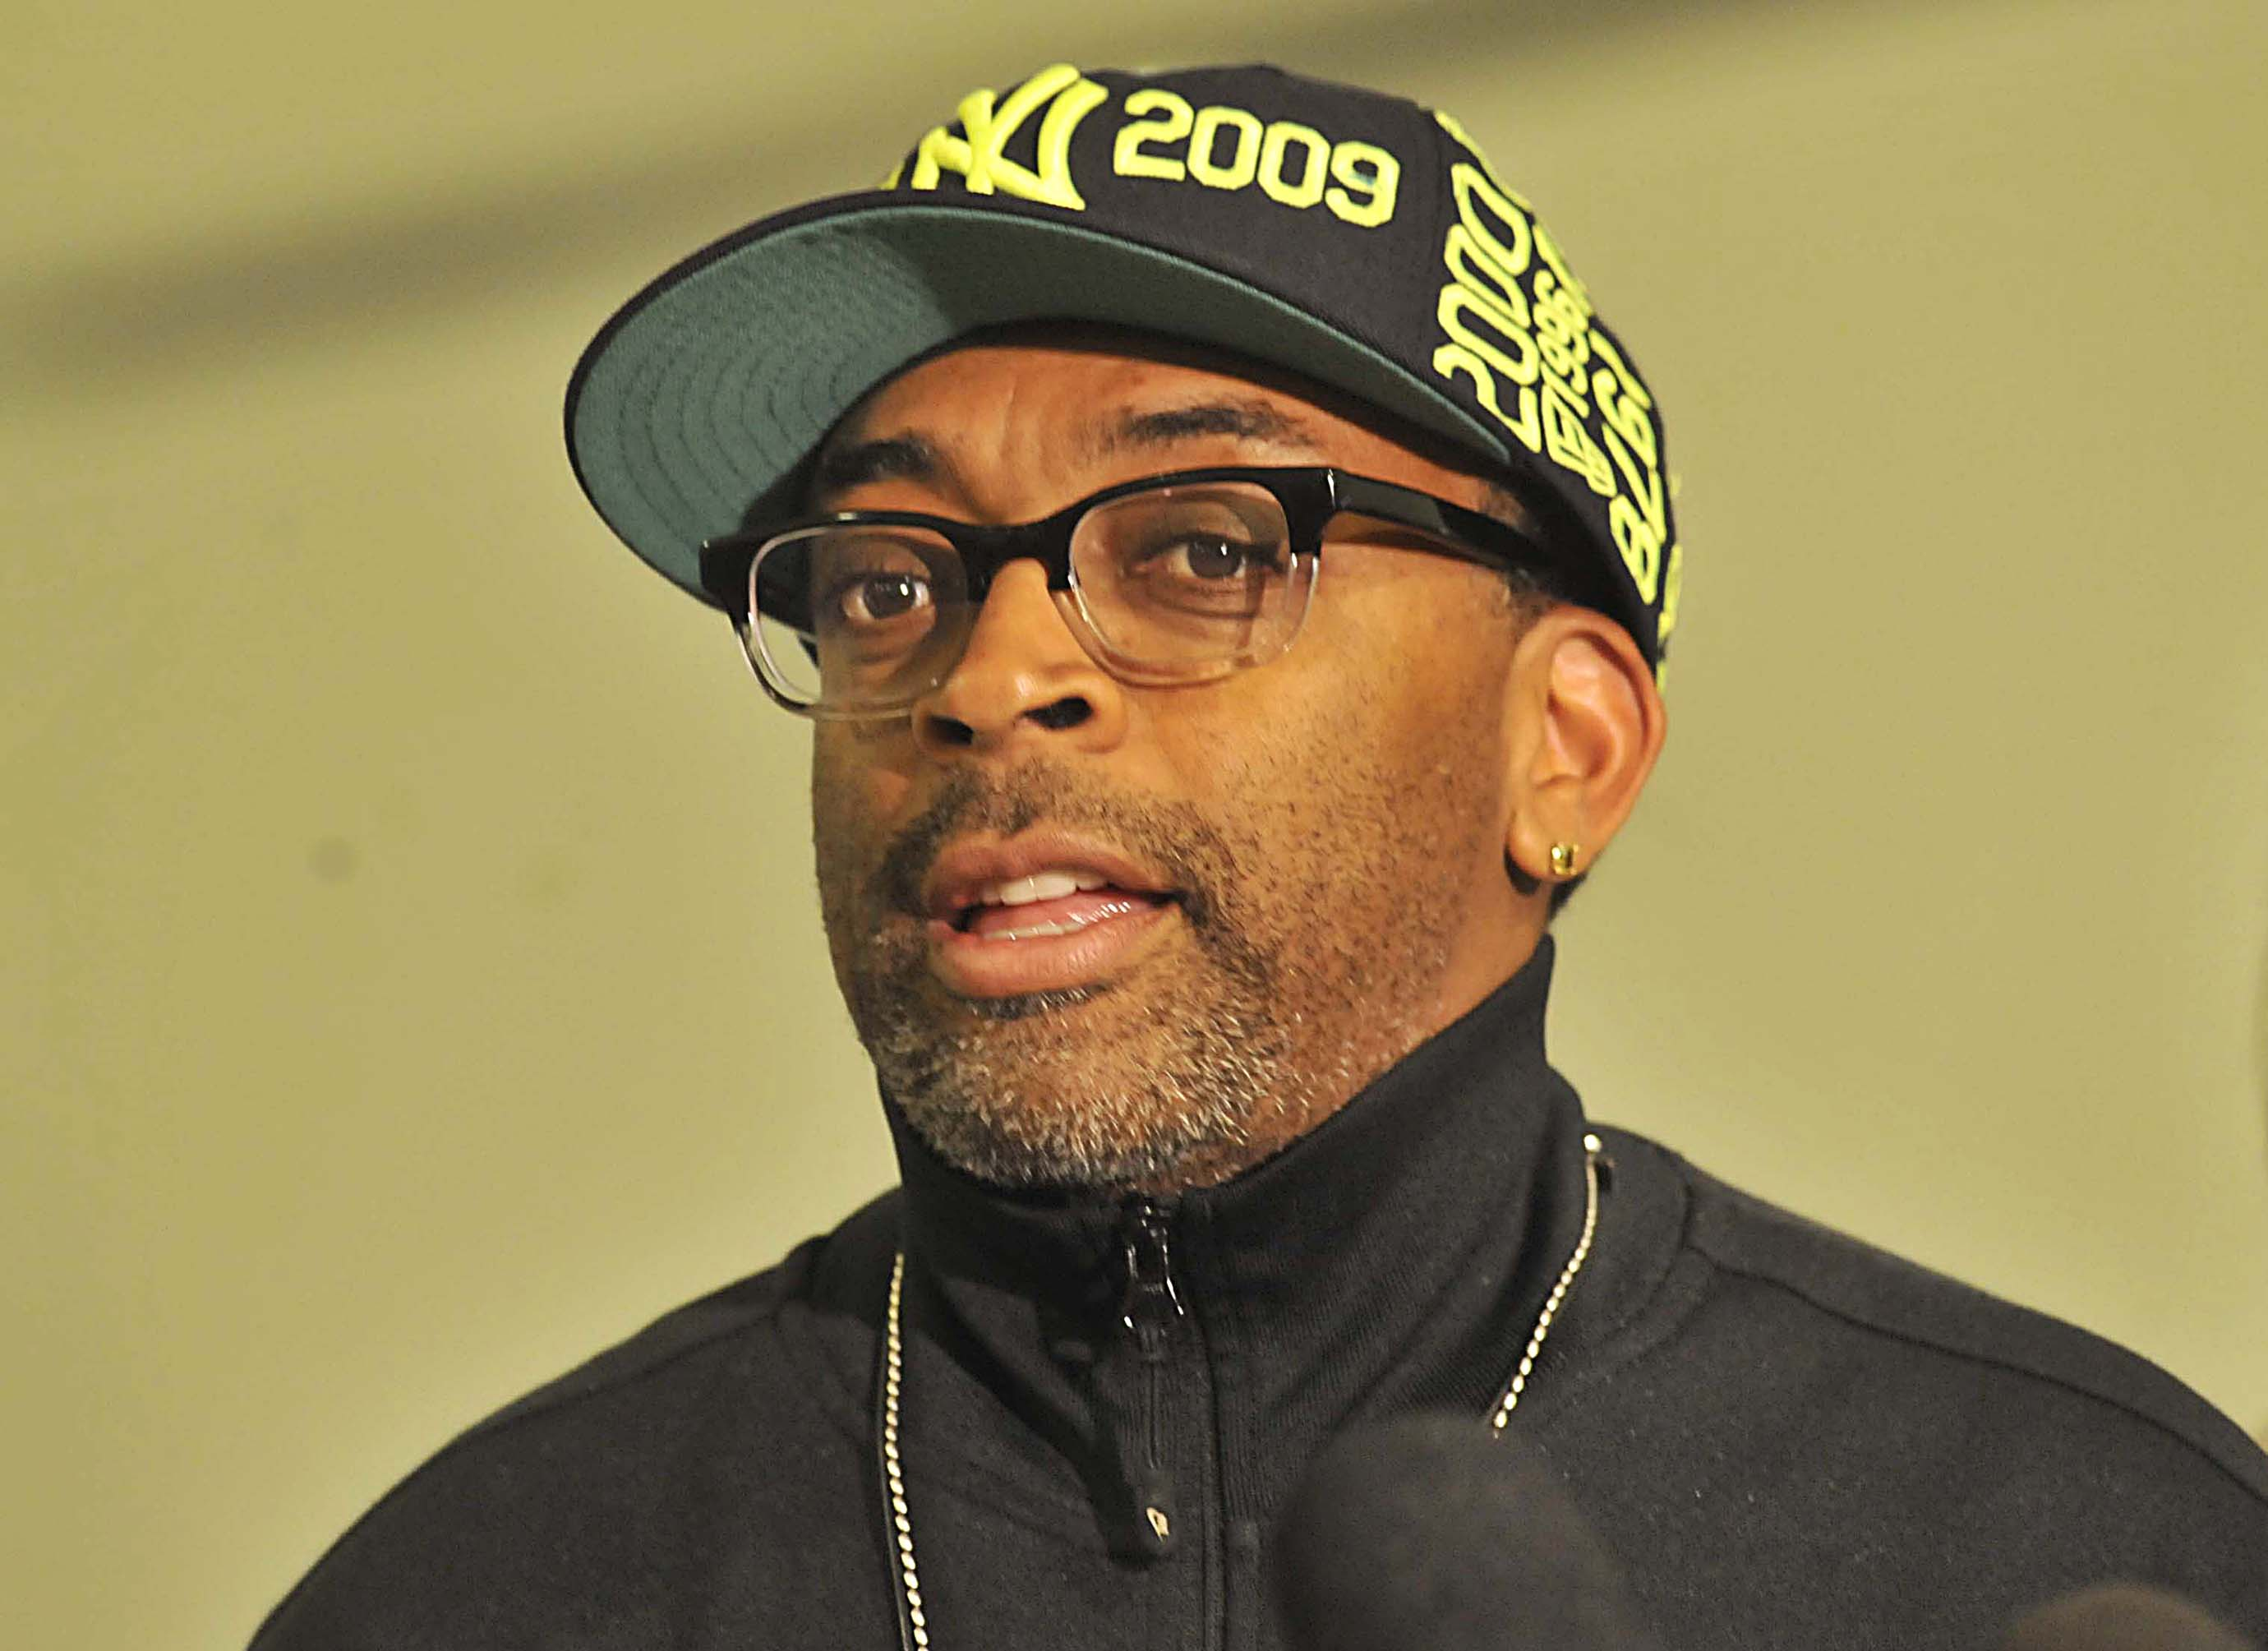 IN FOCUS: Spike Lee